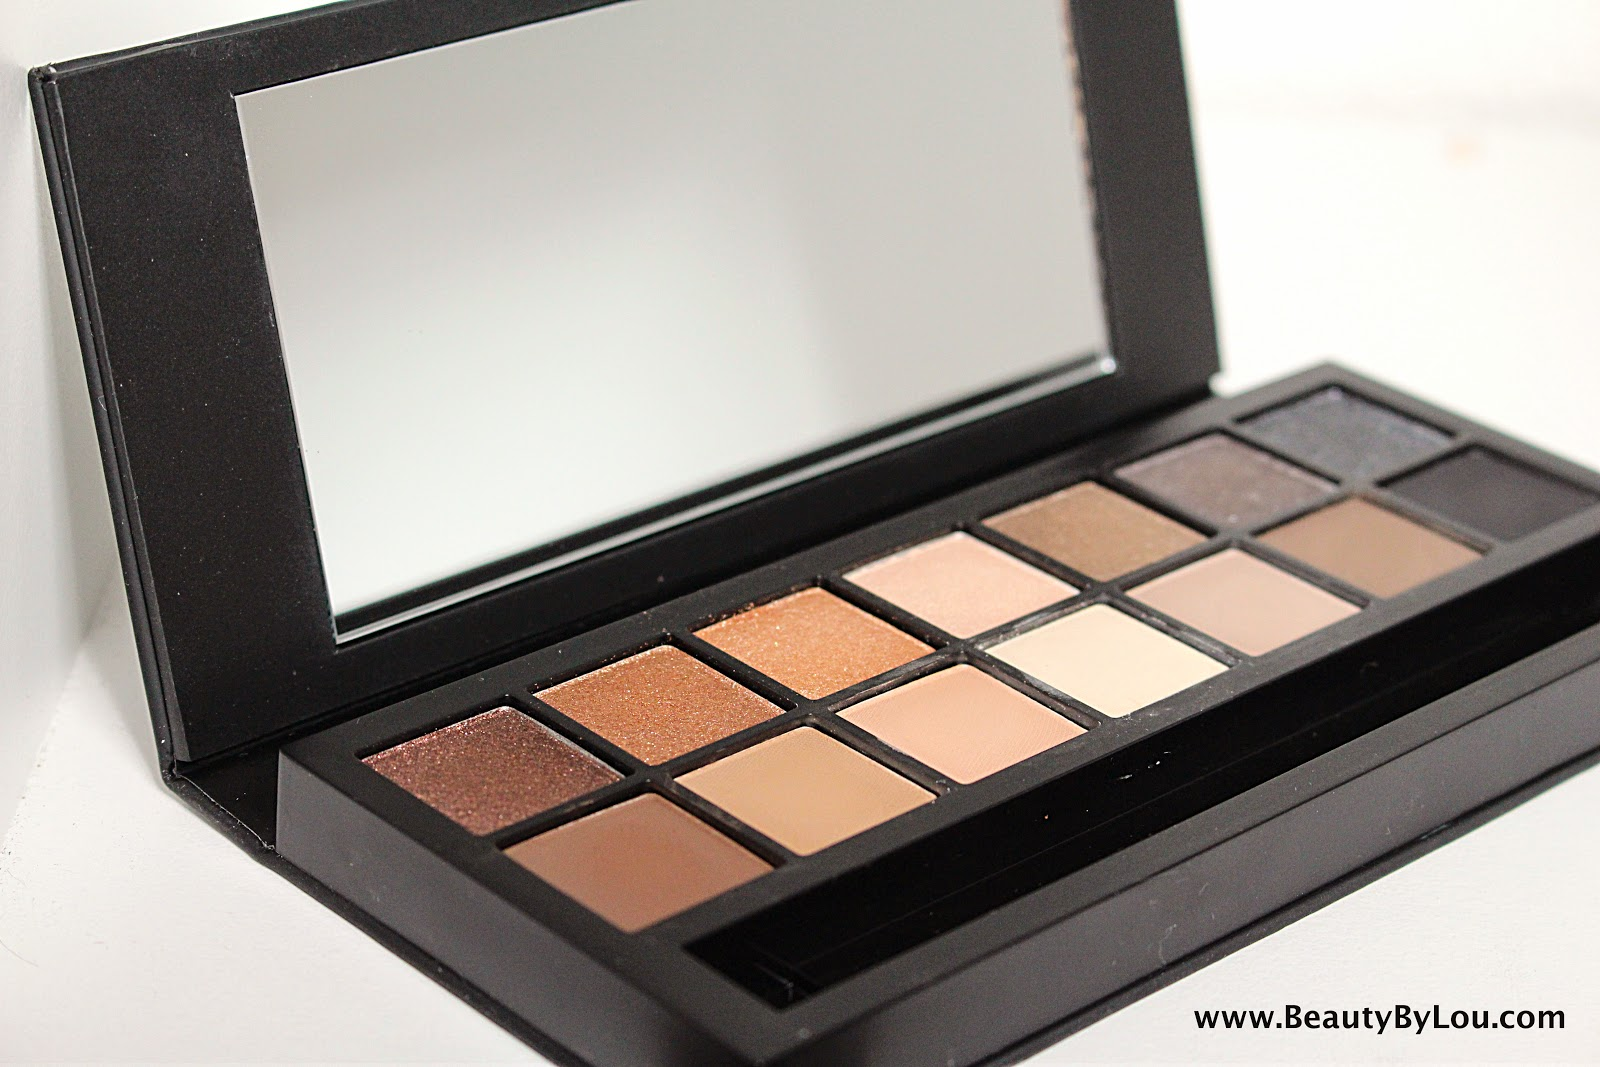 http://www.beautybylou.com/2014/10/full-exposure-smashbox-revue-swatchs.html